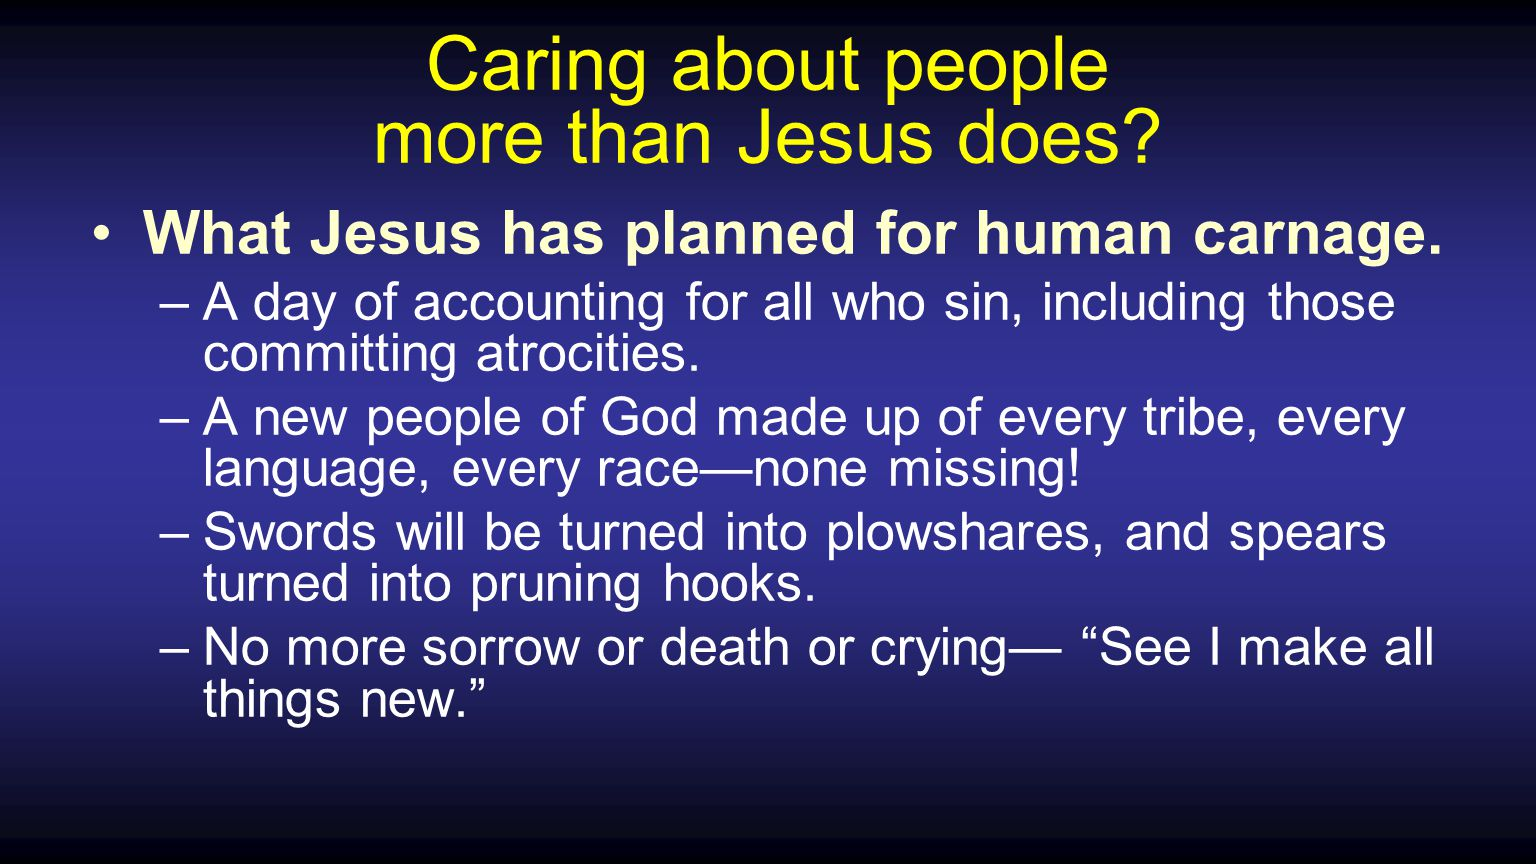 Caring about people more than Jesus does.What Jesus has planned for human carnage.